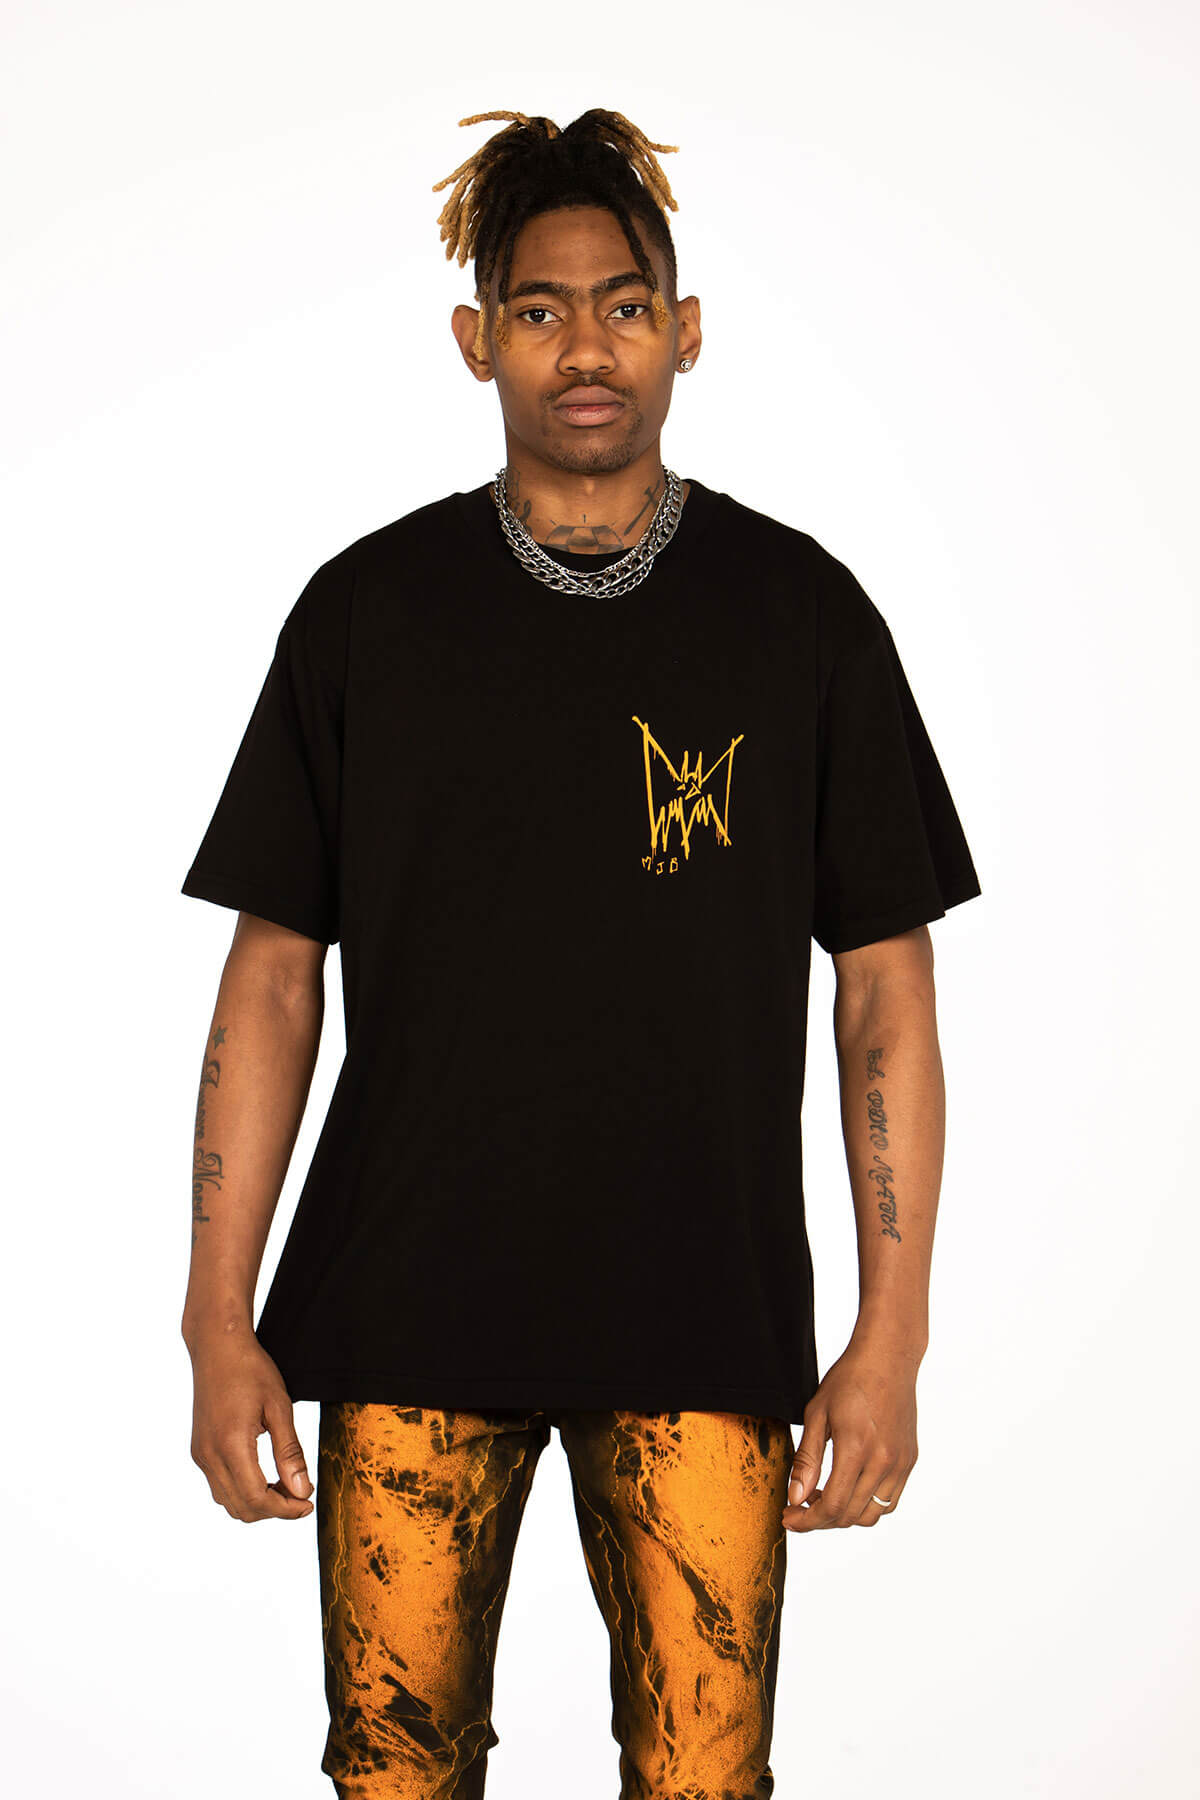 FESTIVAL T SHIRT – WORLD - TOP - MJB